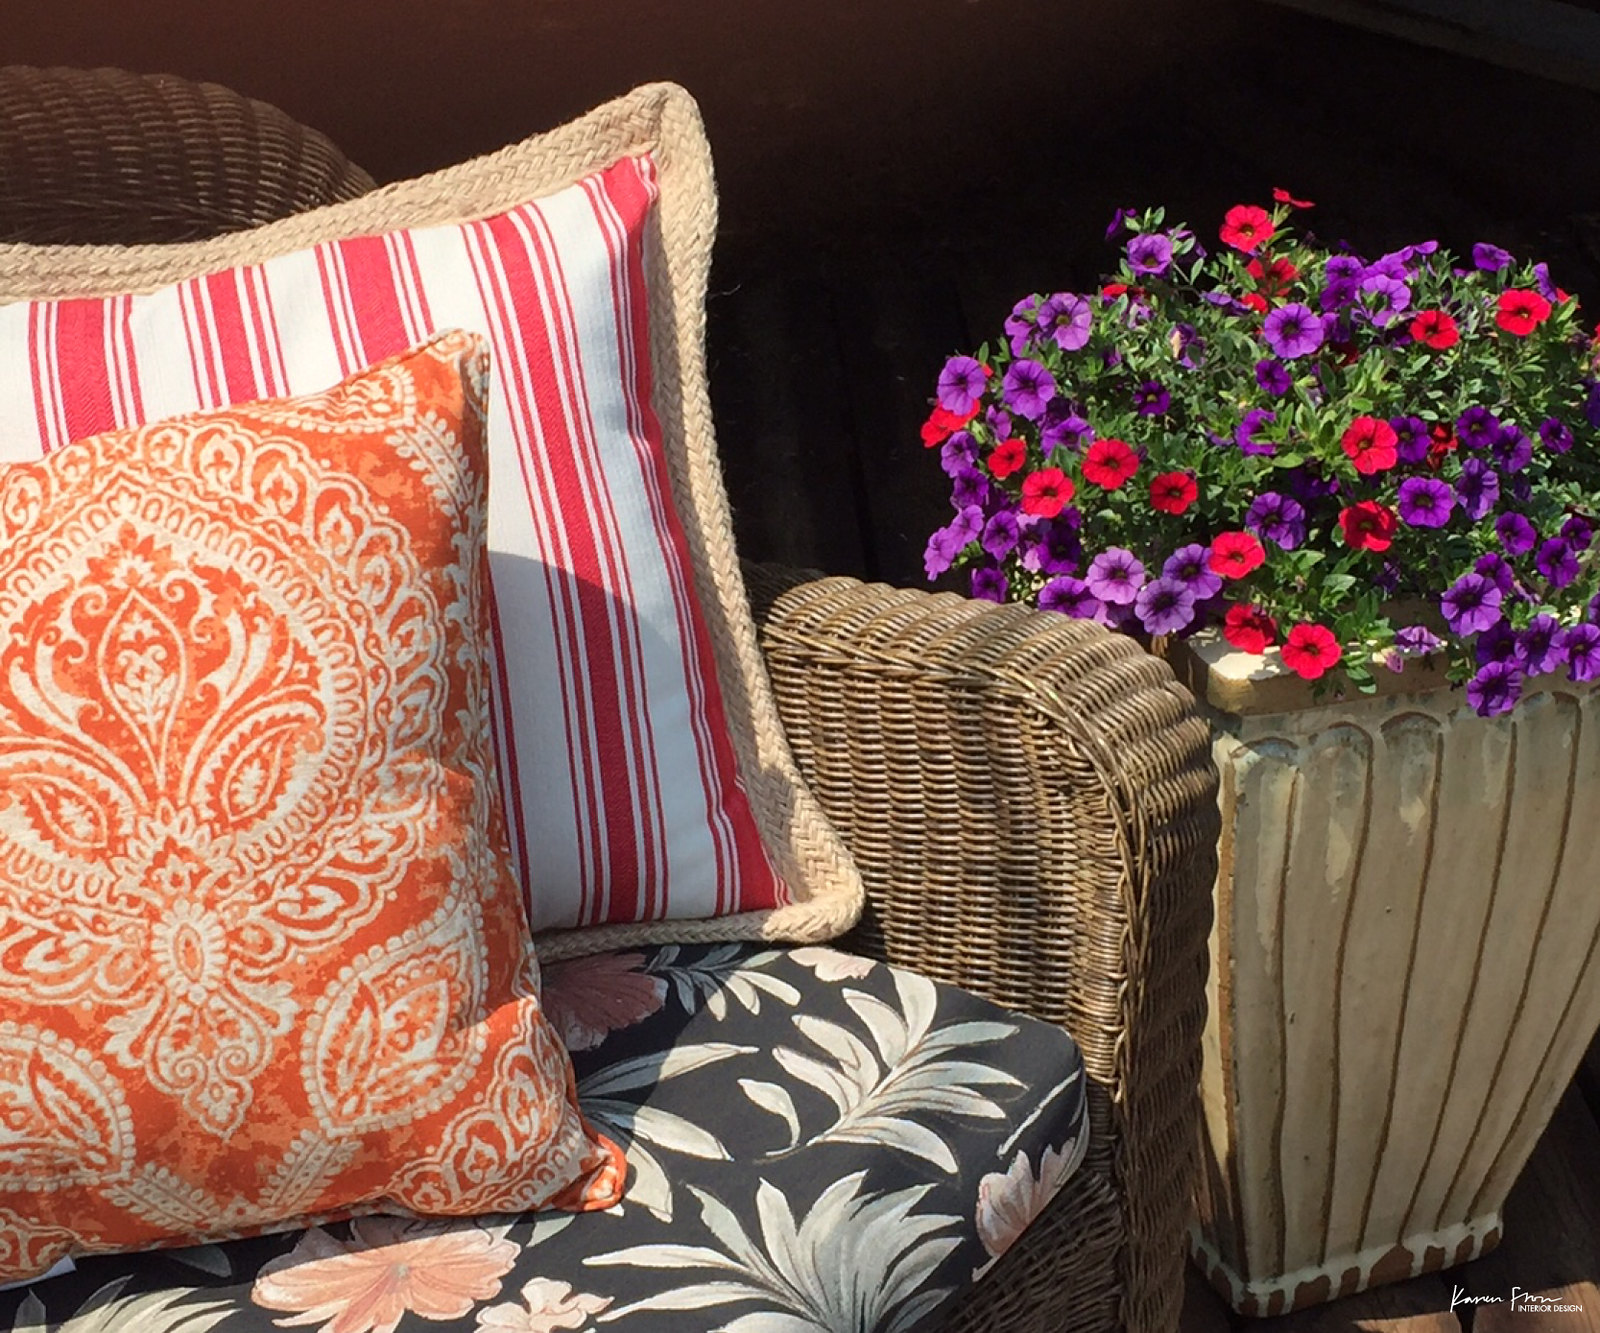 bright summer cushions dress up an outdoor wicker set